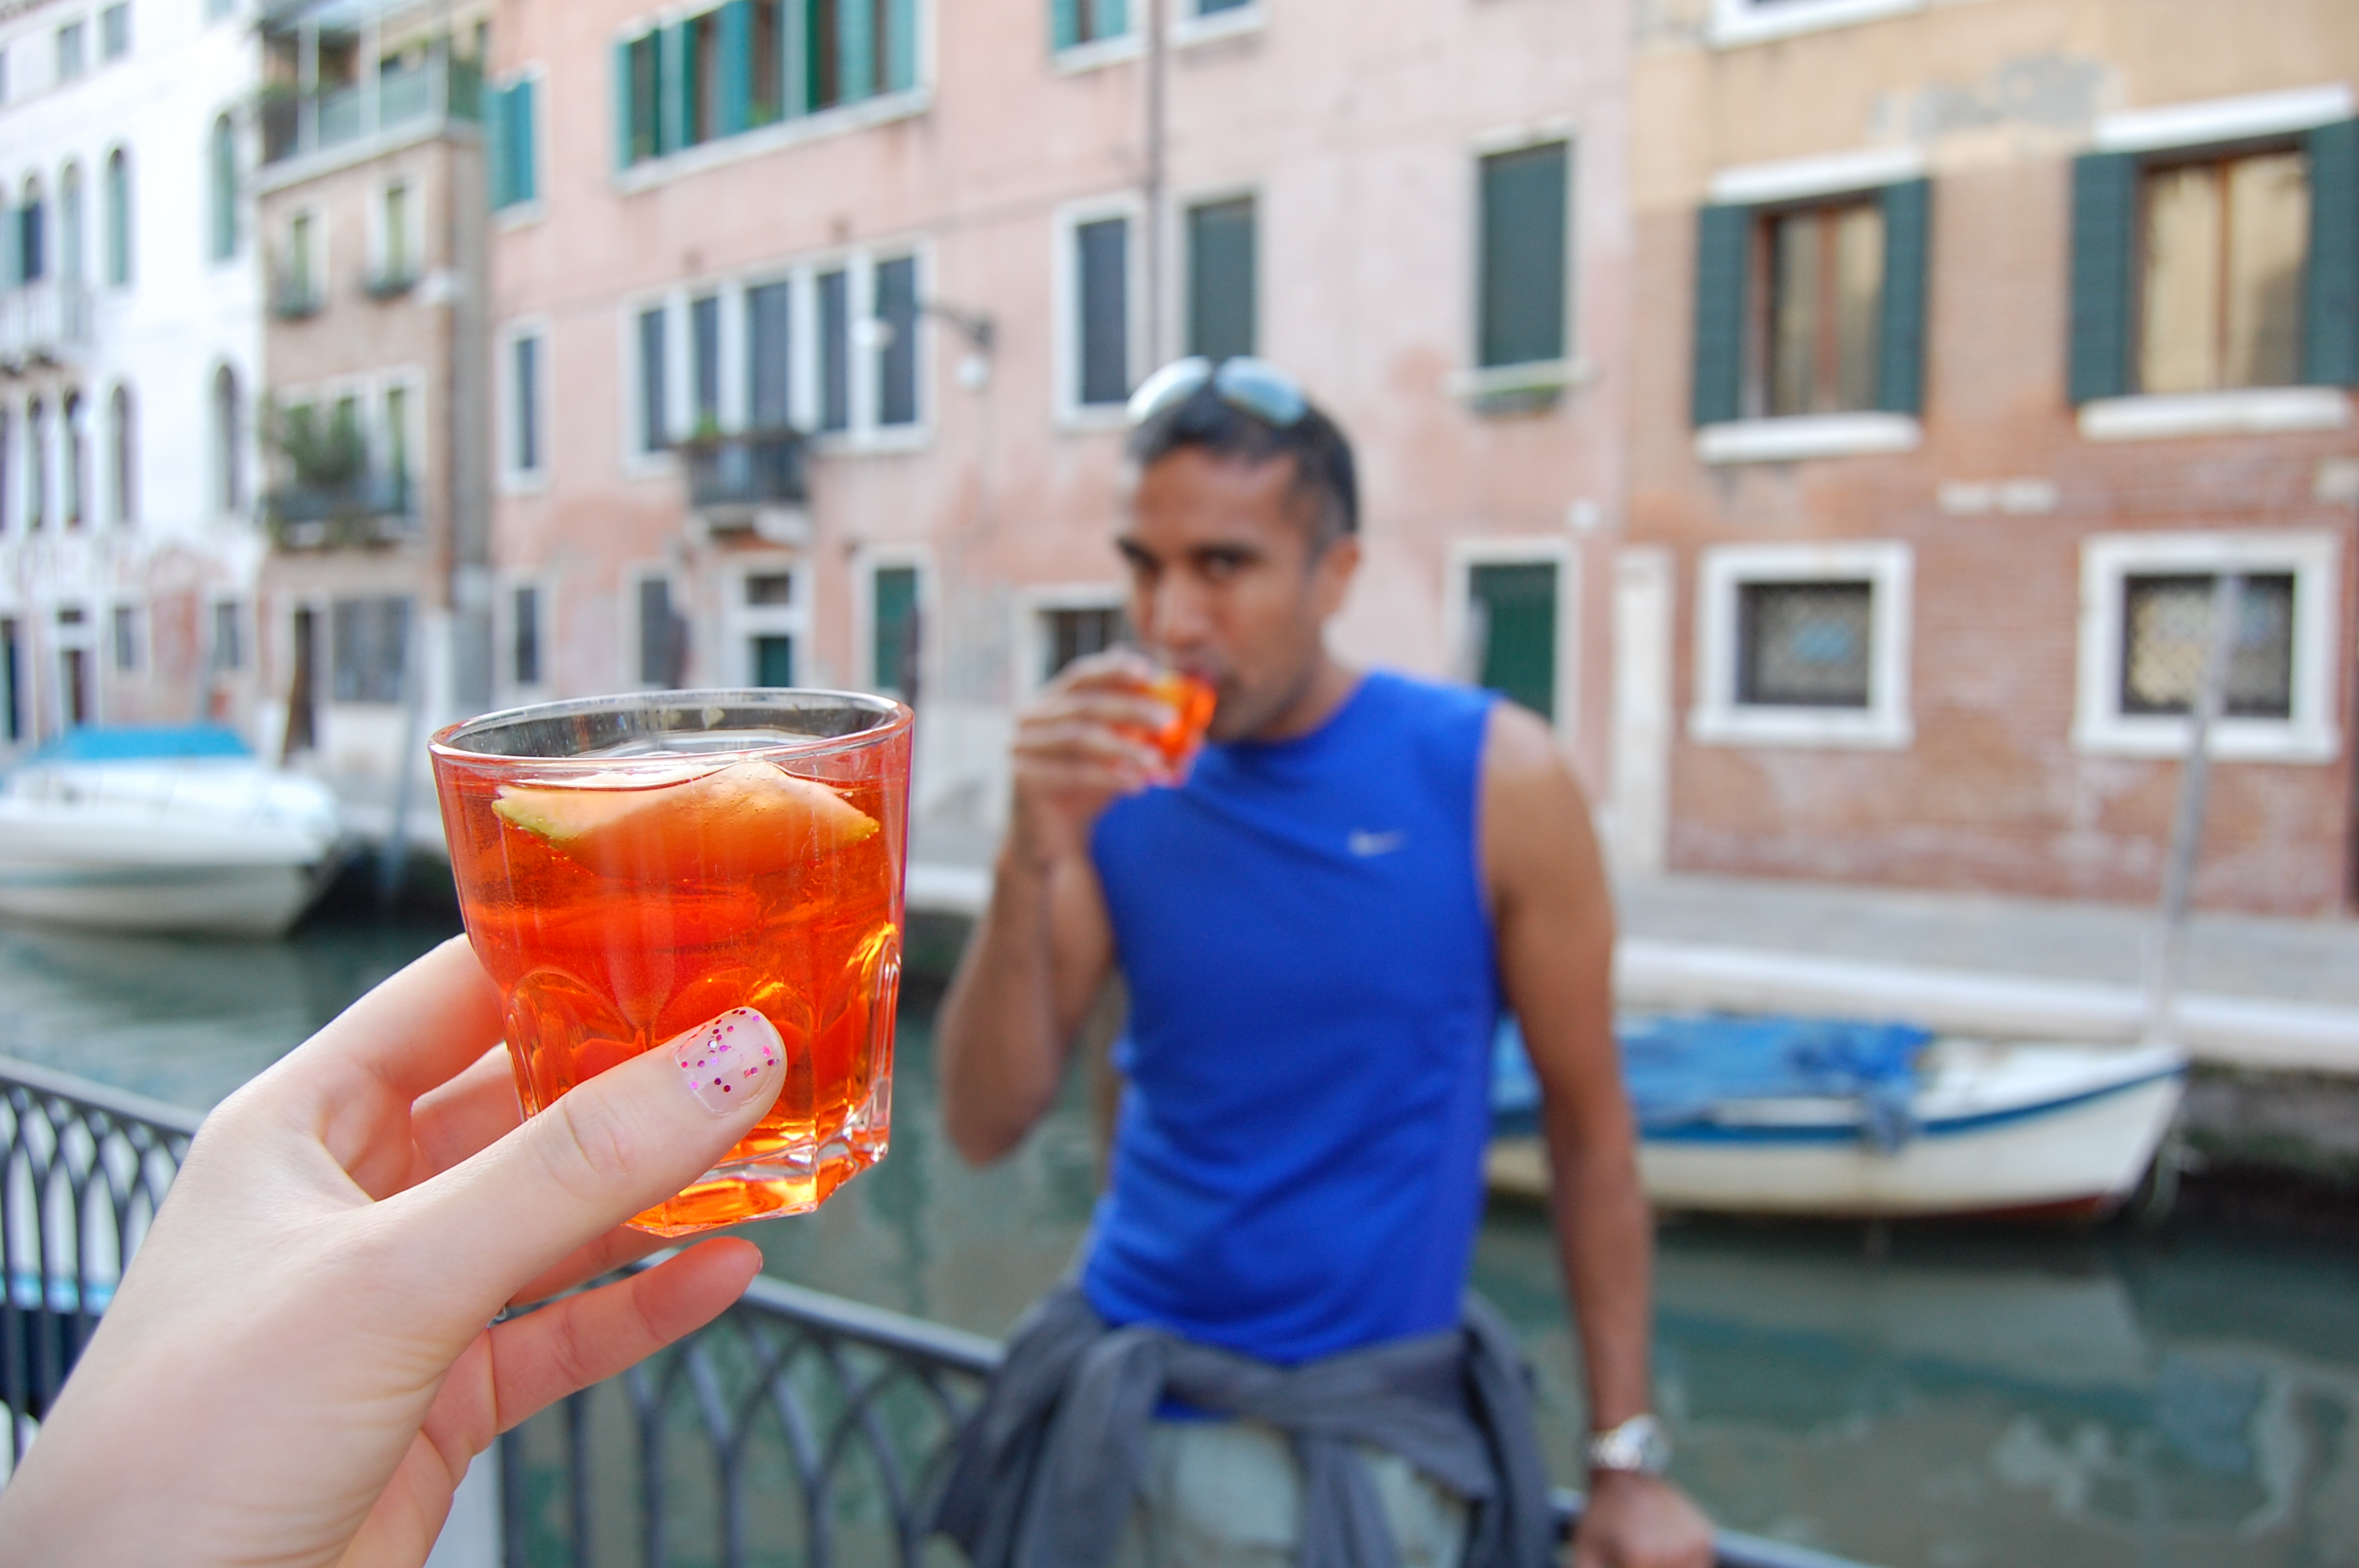 Aperol, they don't call it Bel Paese for nothing.